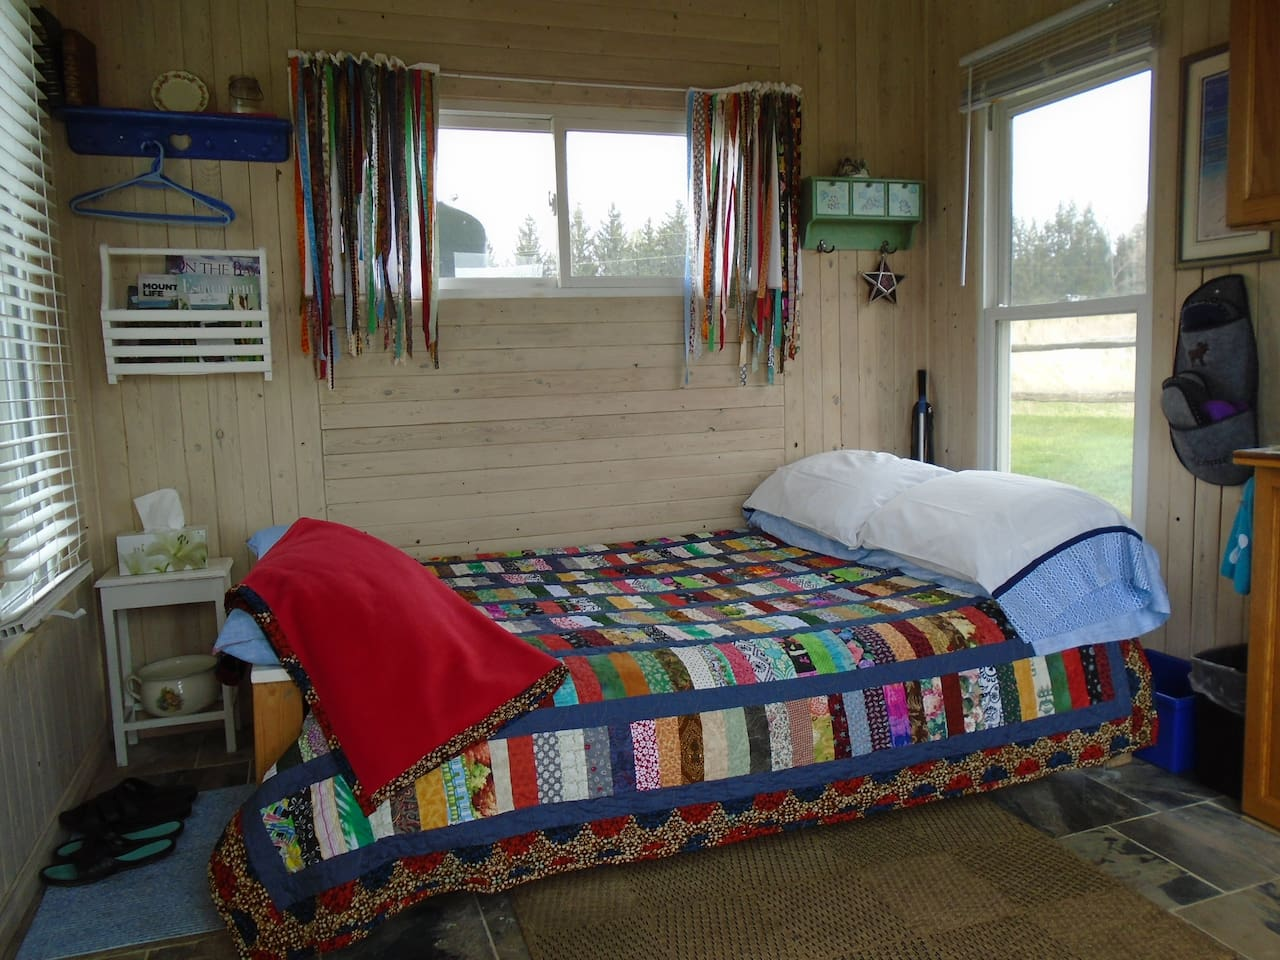 This super comfy bed is covered in hand made bedding from the quilts to the pillow cases to the cozy throw.